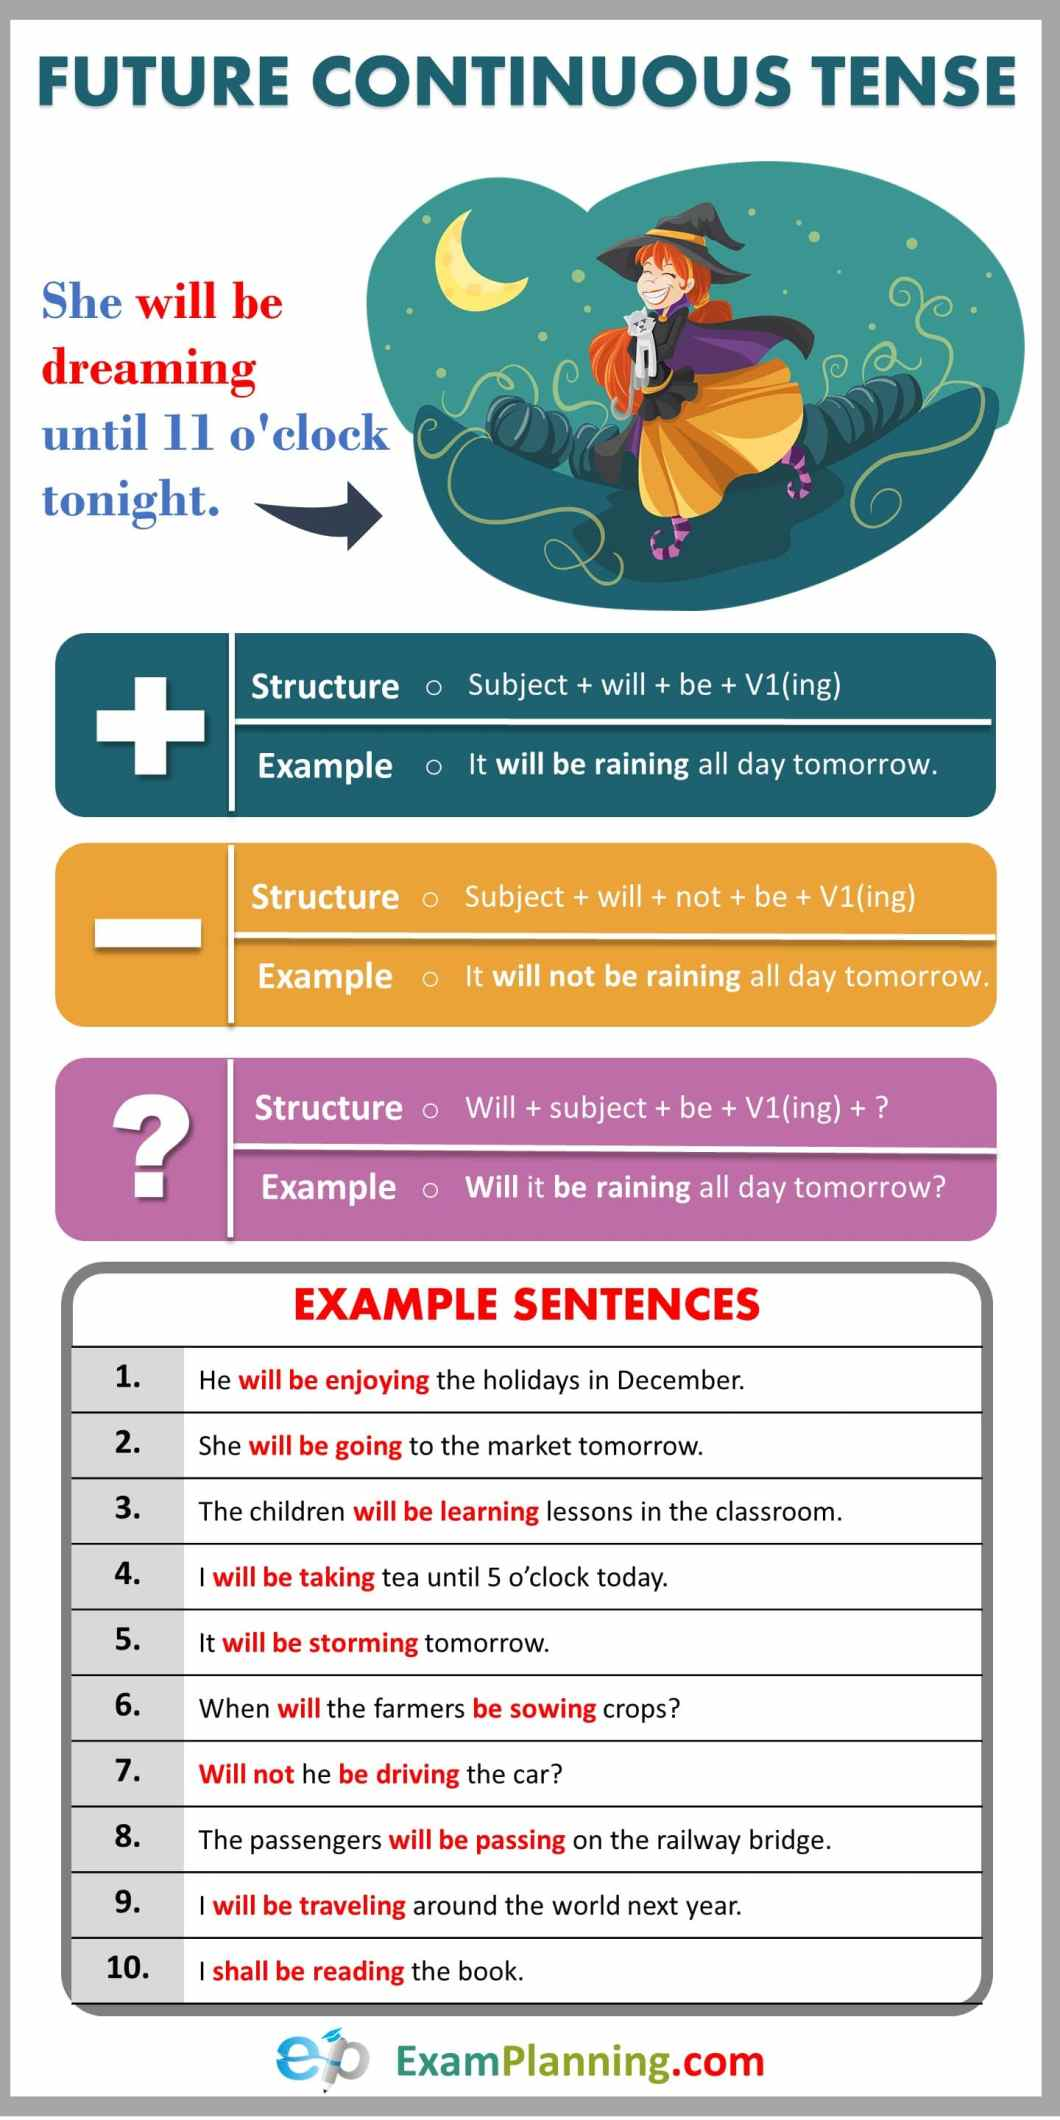 Future Continuous Tense (Usage, Formula and Examples)